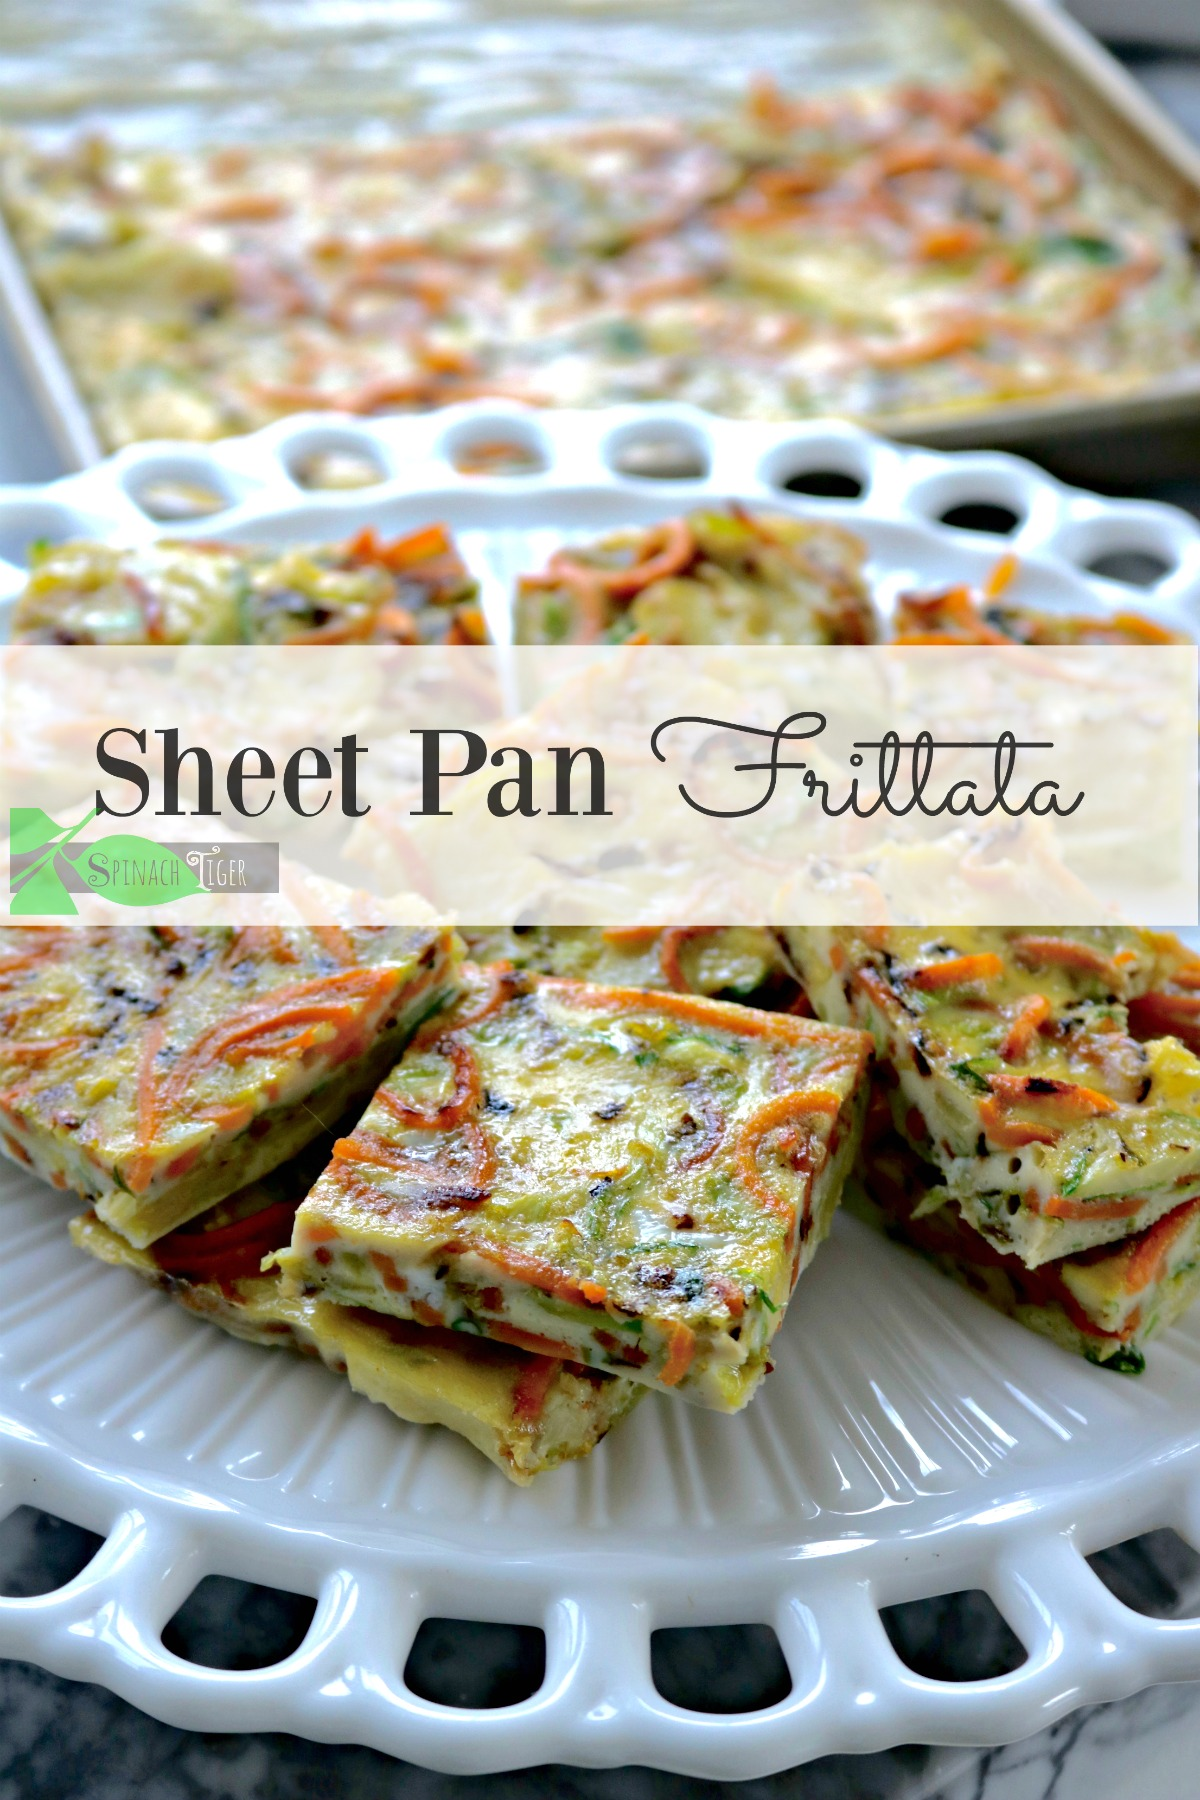 Sheet Pan Frittata and Holiday Side Dishes from Spinach Tiger